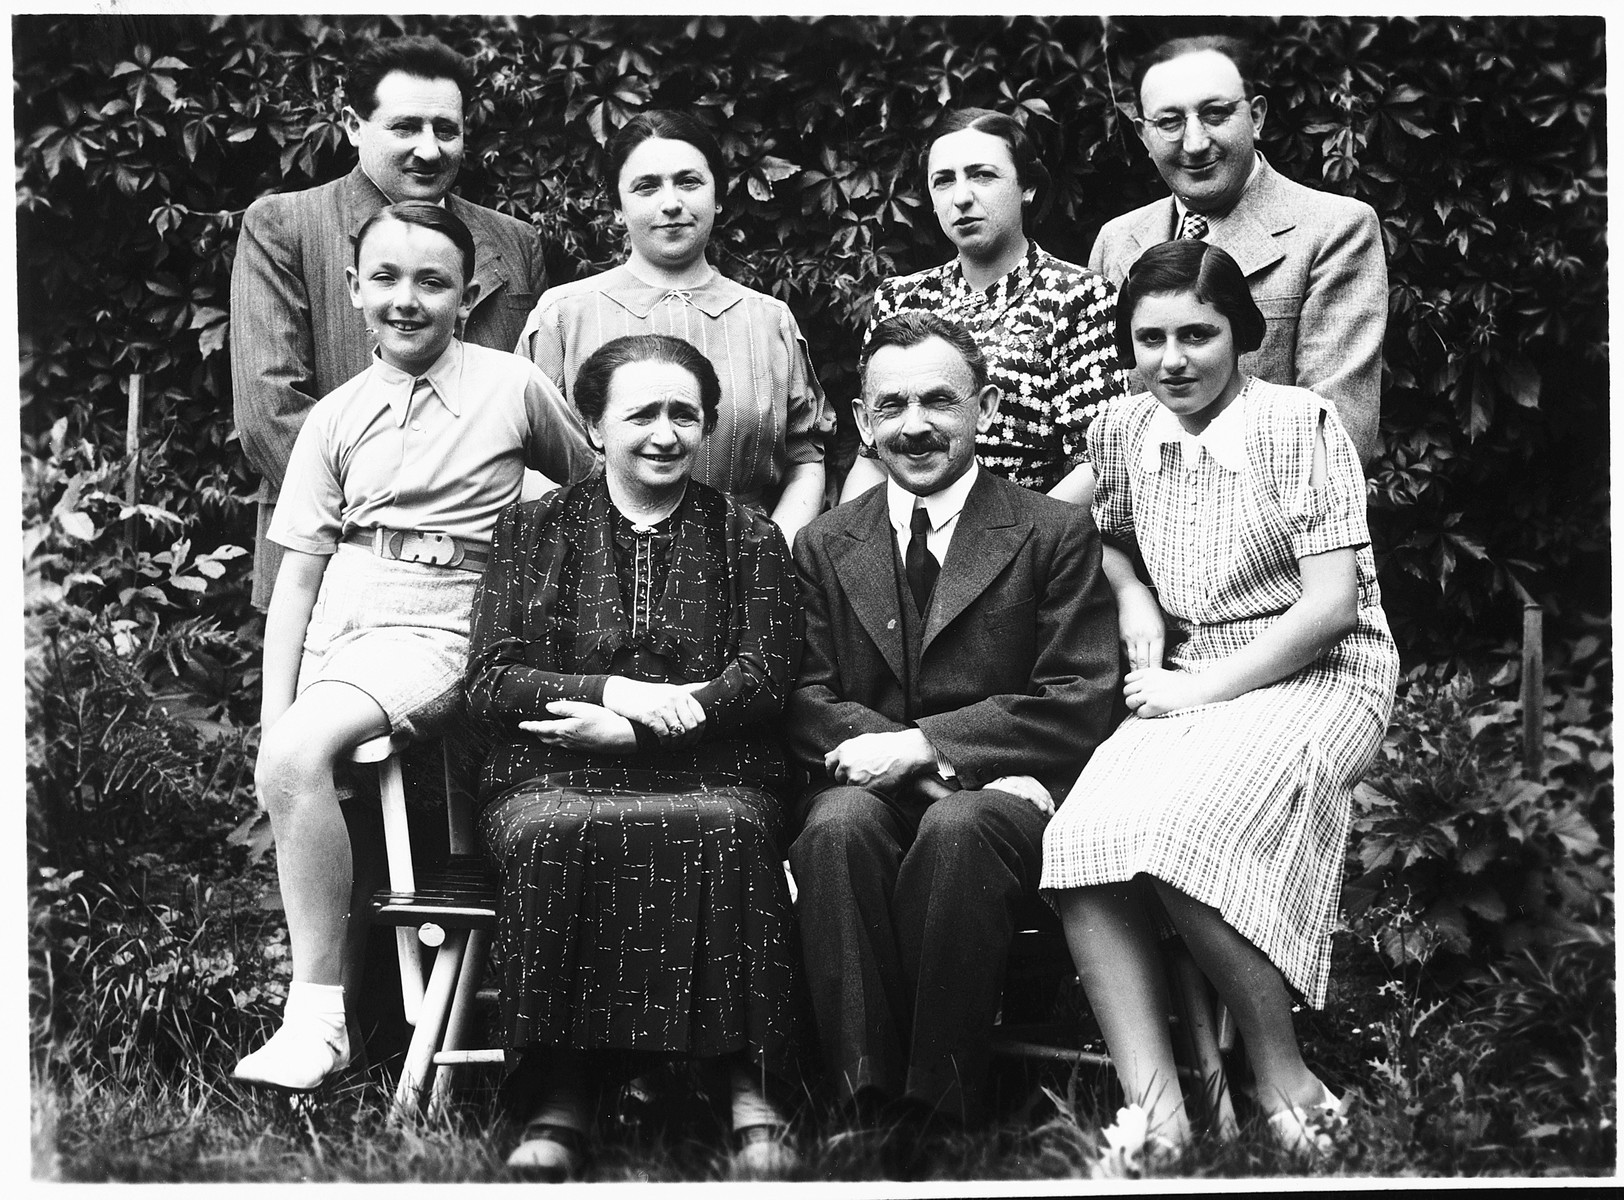 Group portrait of an extended Jewish family posing outside in a town in Bohemia.  Pictured sitting from left to right are: Ivo Reiter, Berta Budlovska, Zigmund Budlovsky and Helena Hallerova. Standing are: Oskar Haller, Sephanka Hallerova, Augusta Reiterovska and Otto Reiter.